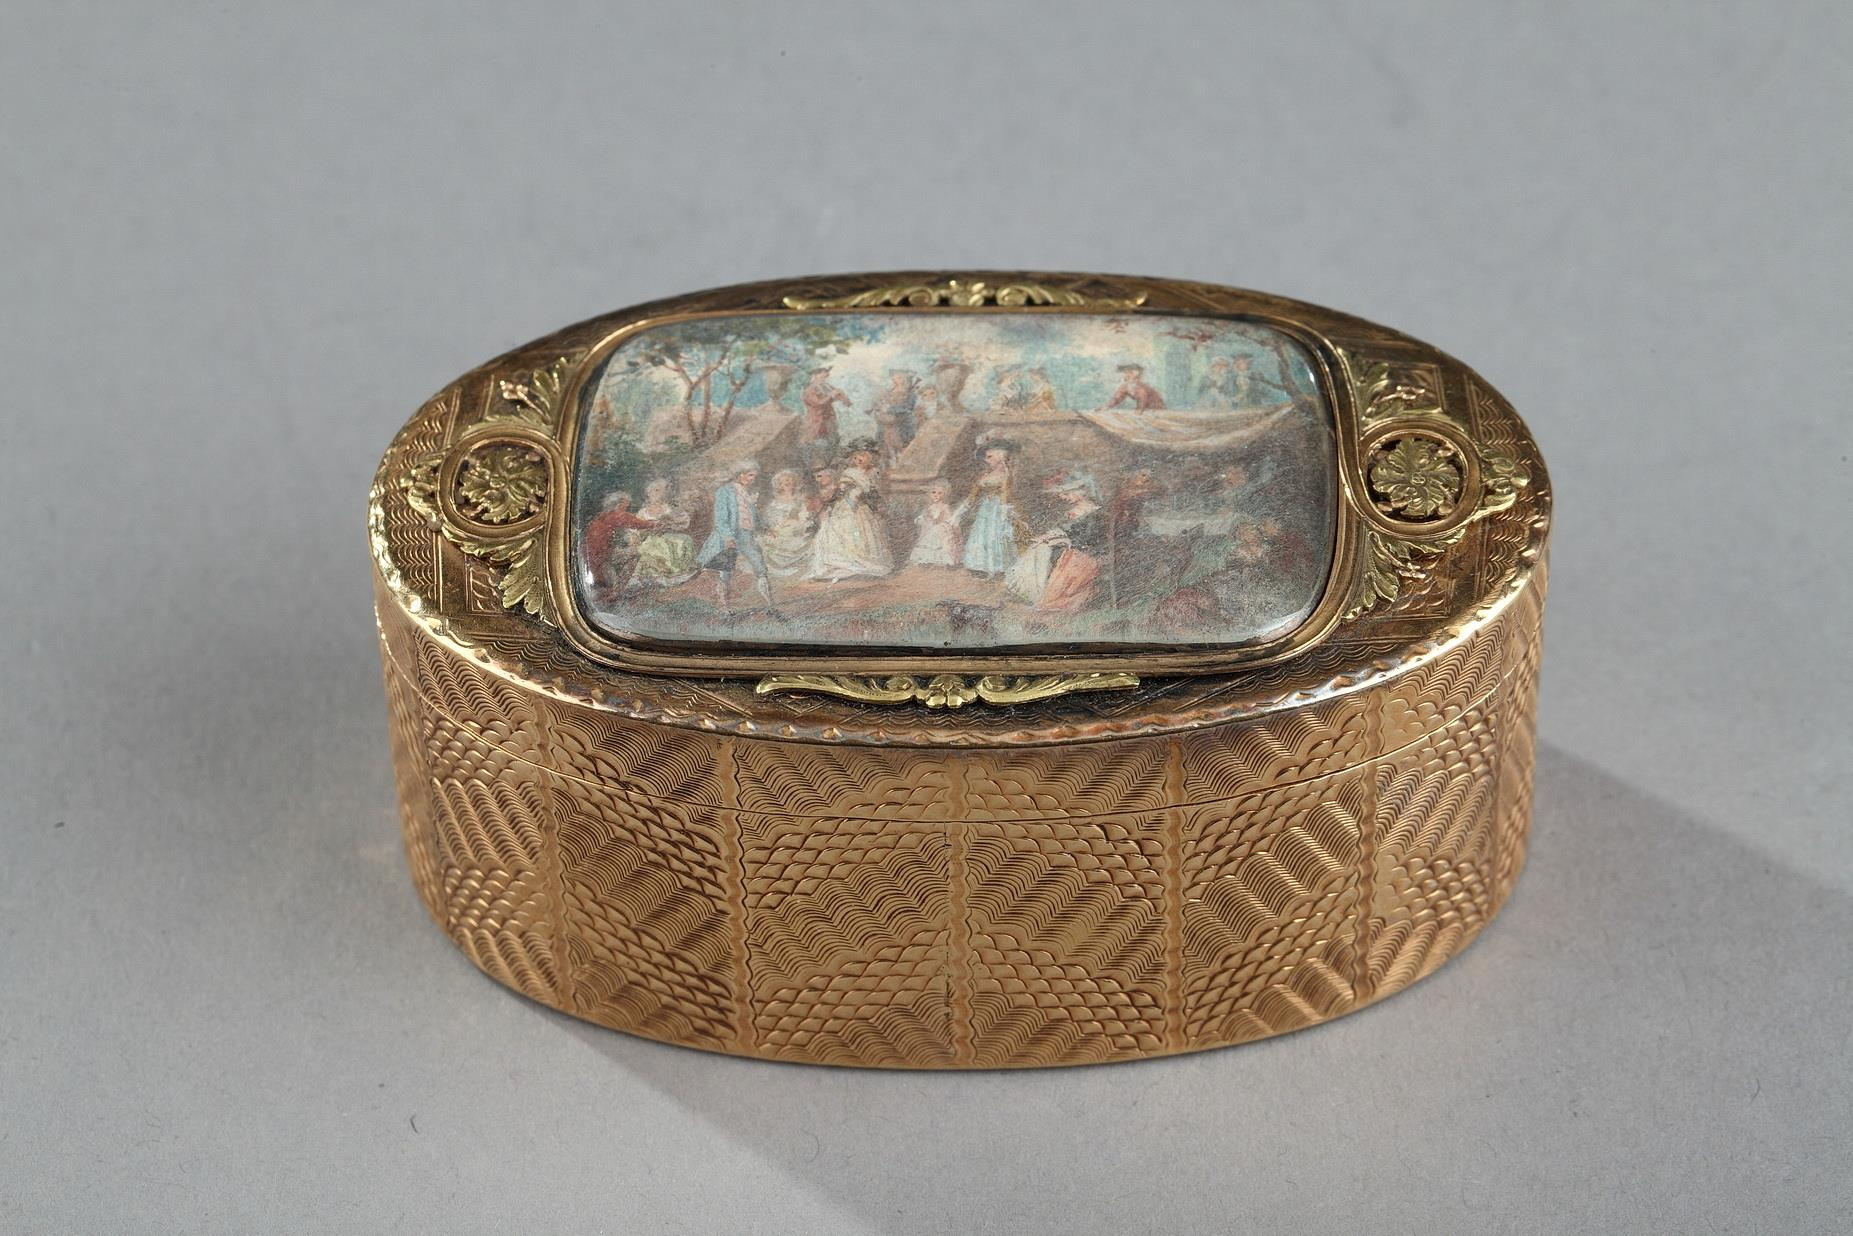 Gold box with a miniature 18th Century